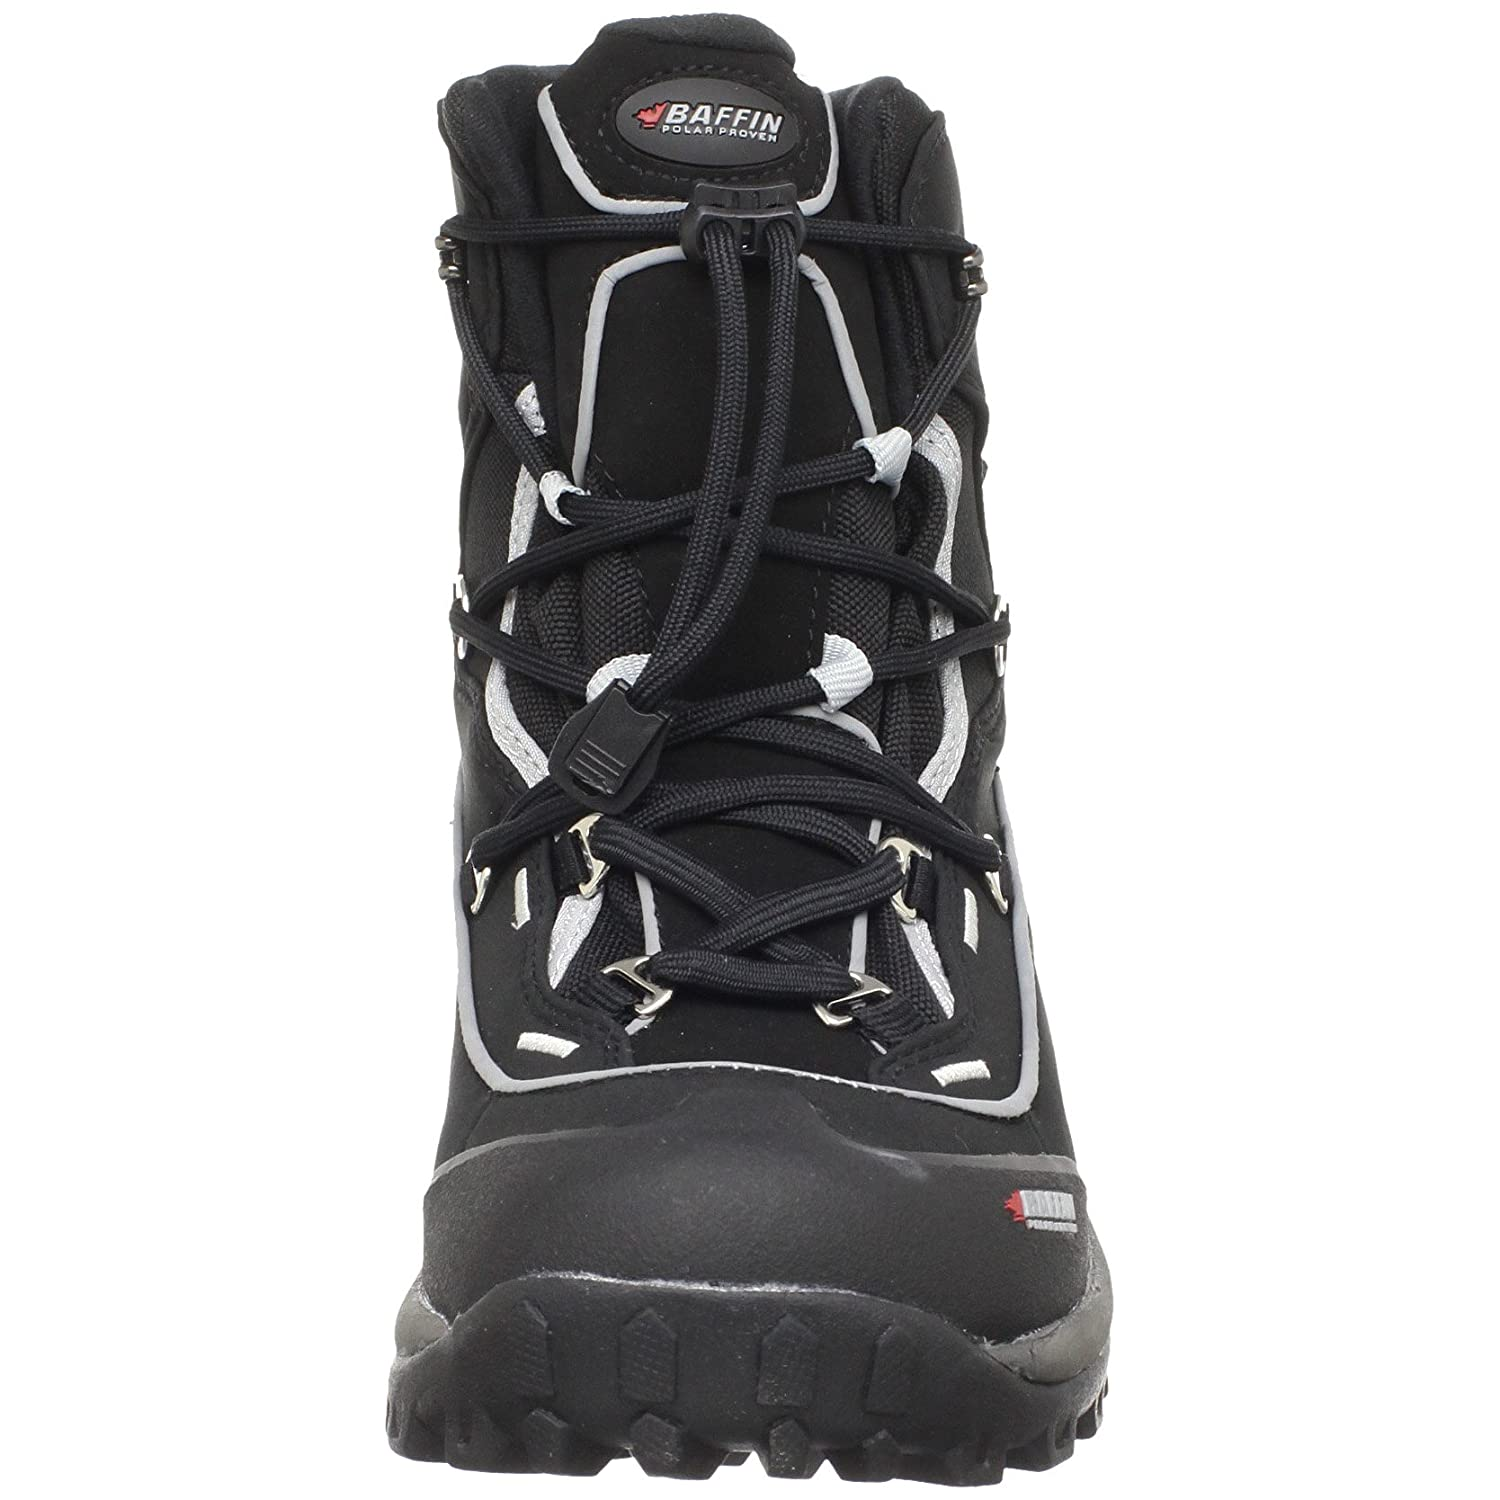 Baffin Women's Snosport Hiking B(M) Boot B003HKS8A4 10 B(M) Hiking US|Black 817ec7